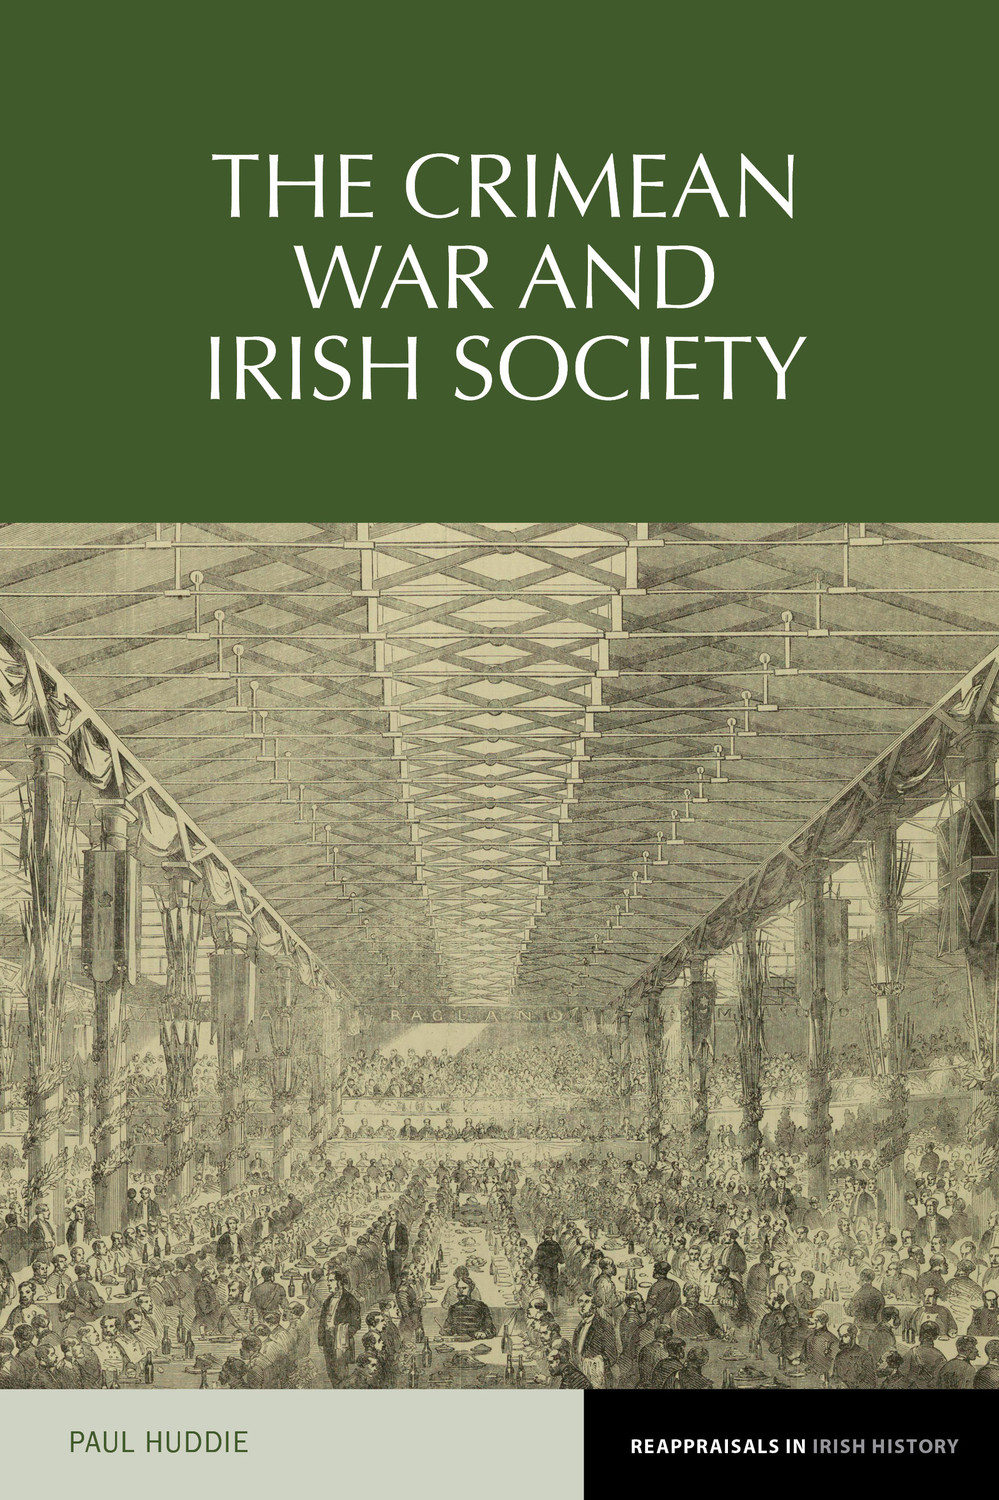 The Crimean War and Irish society